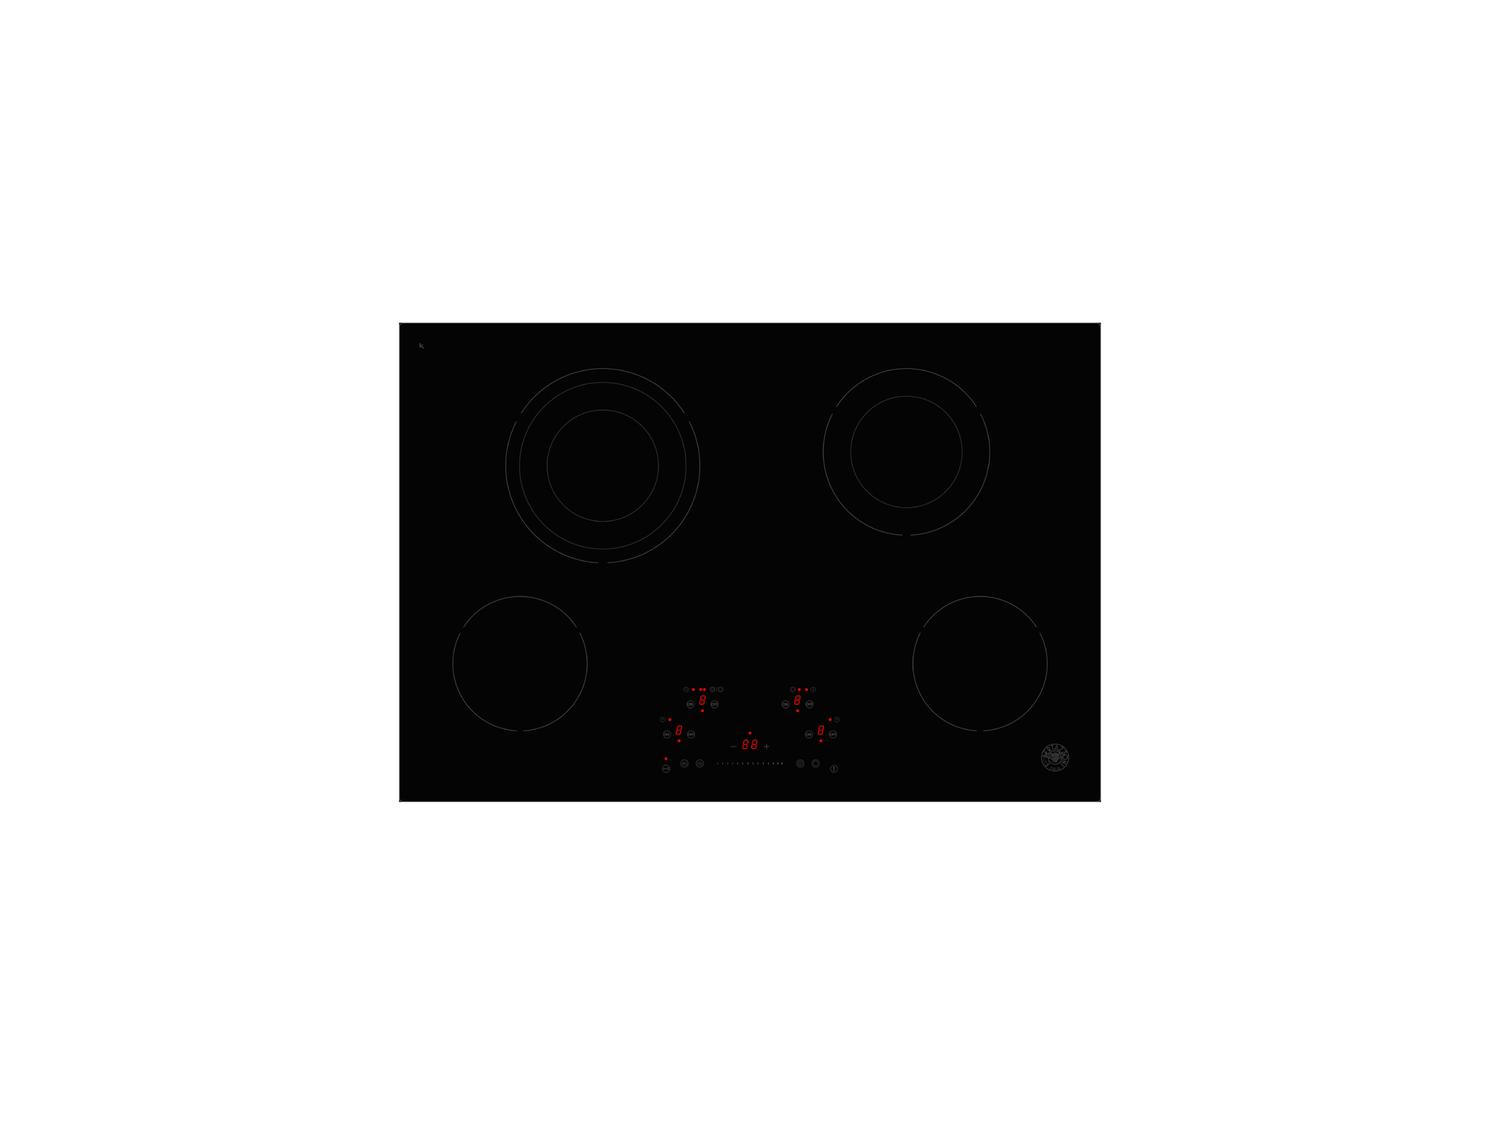 24 Ceran Touch Control Cooktop 4 heating zones Nero